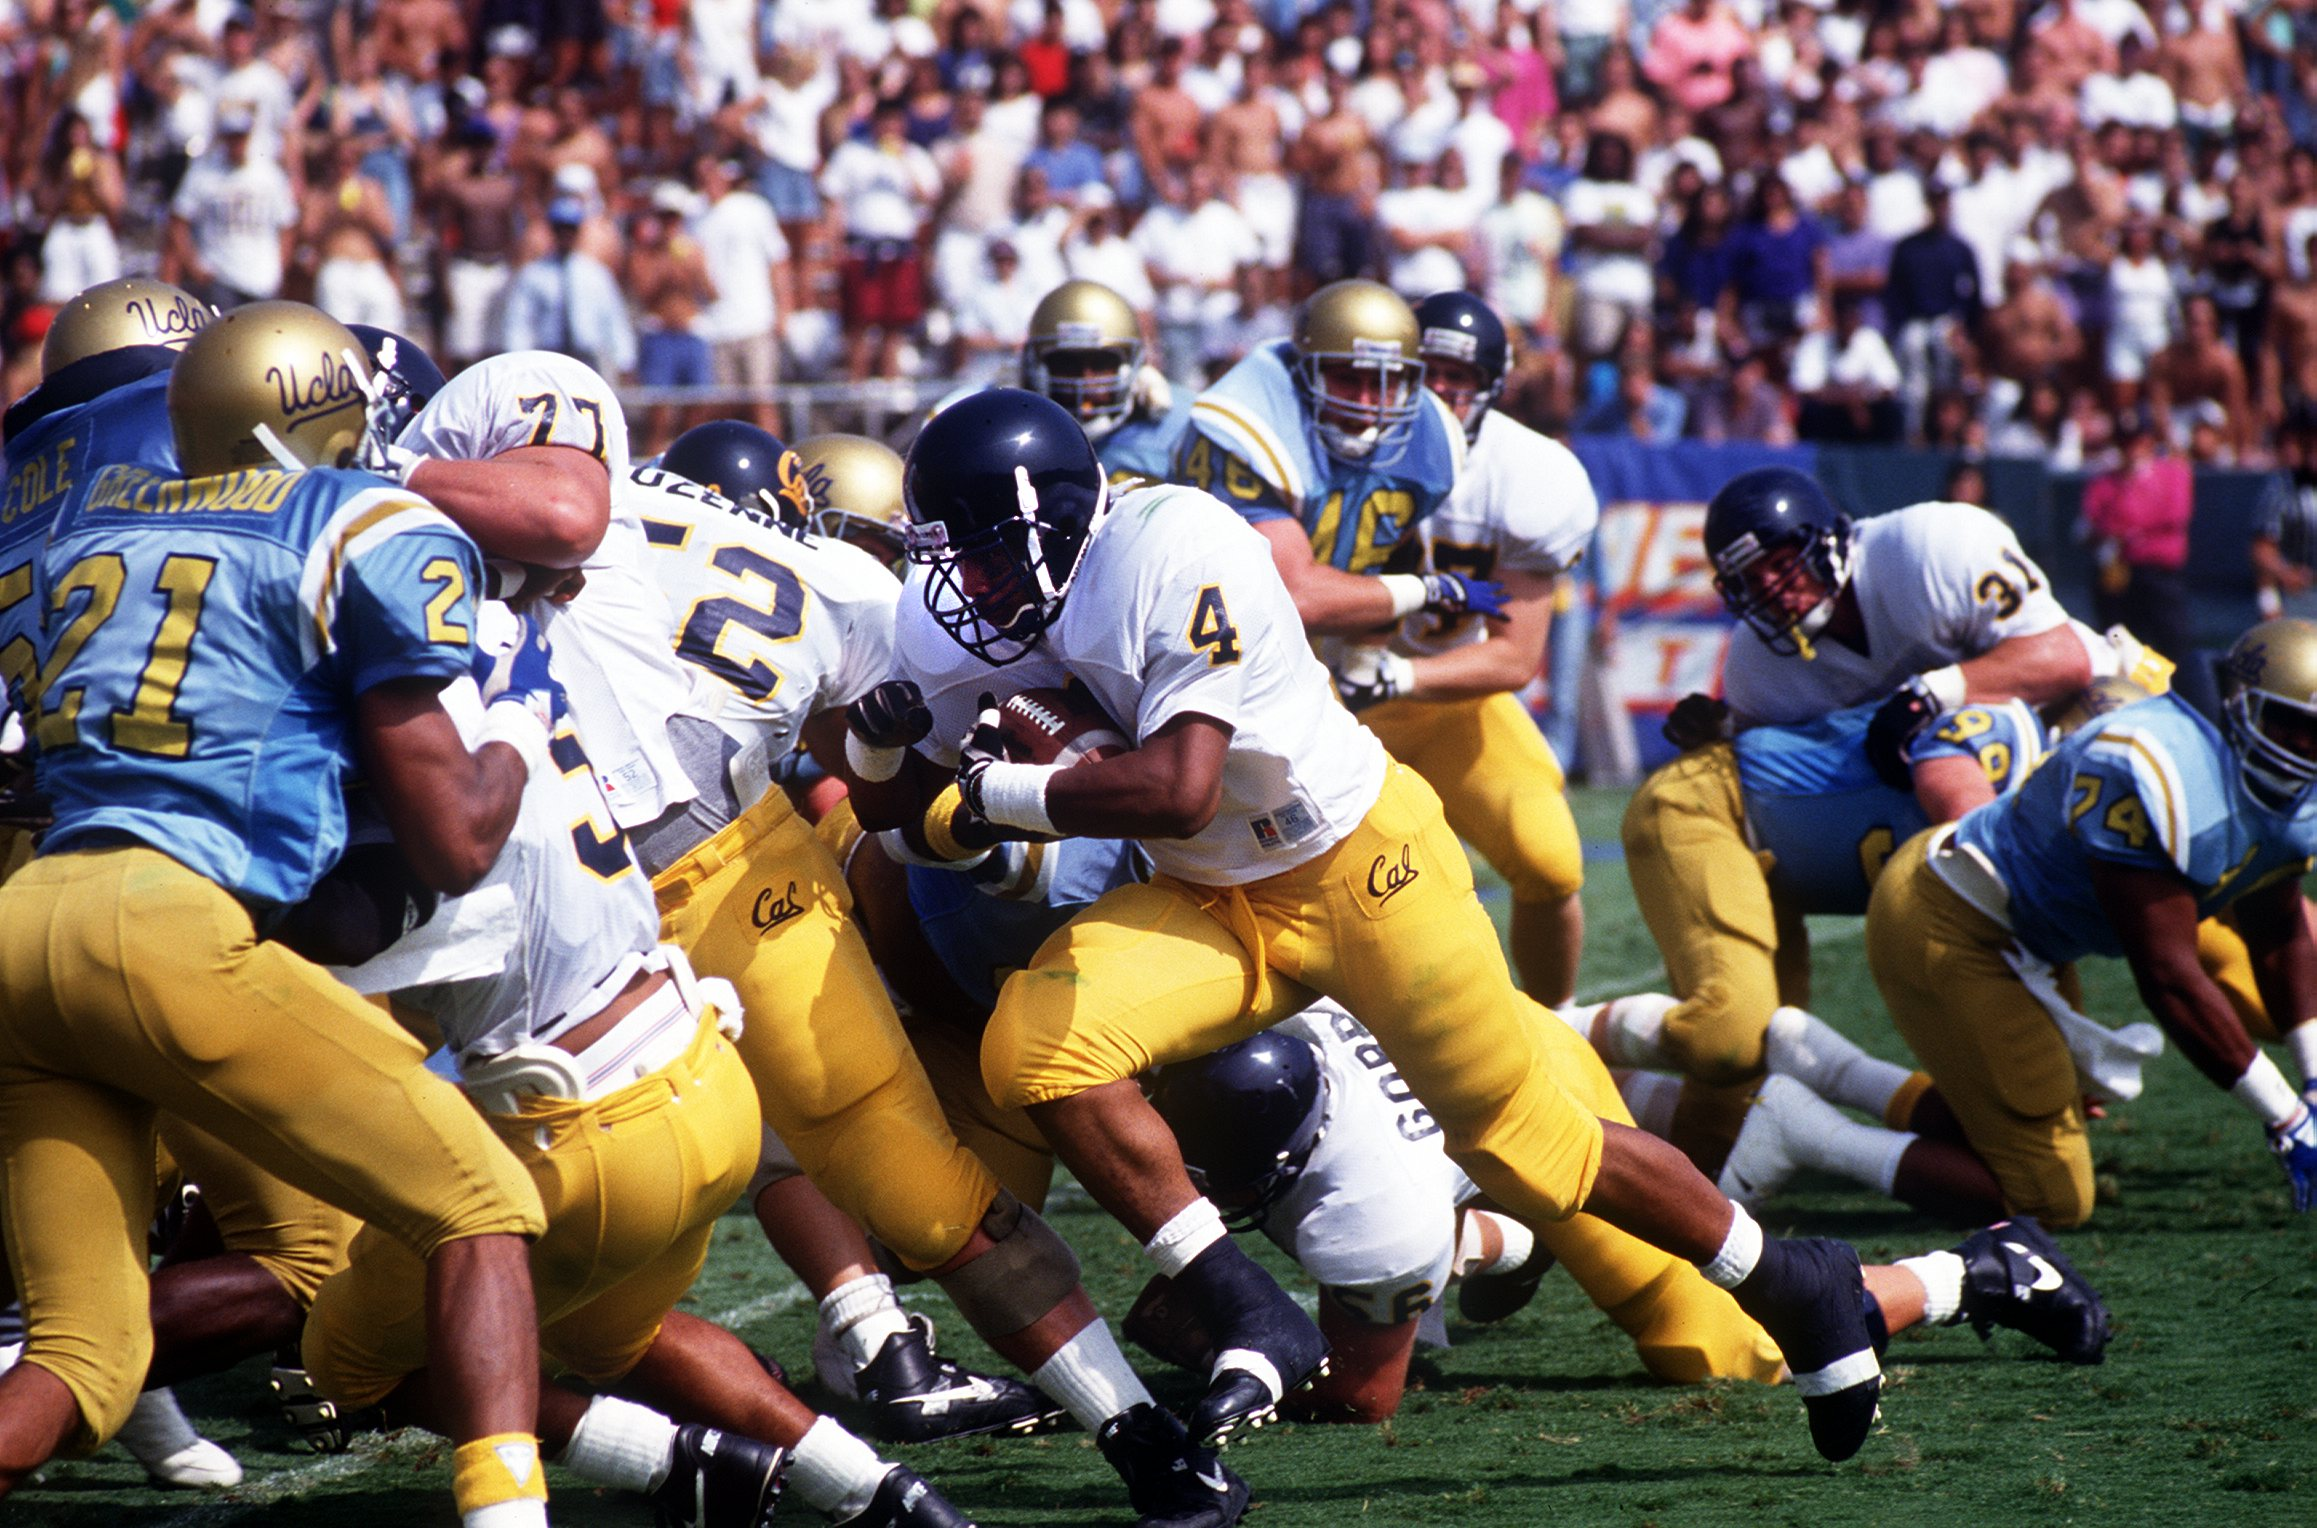 5 OCT 1991:  CAL RUNNING BACK RUSSELL WHITE CARRIES THE FOOTBALL INTO THE LINE OF SCRIMMAGE, LOOKING FOR AN OPEN HOLE, DURING THE GOLDEN BEARS 27-24 VICTORY OVER THE UCLA BRUINS AT THE ROSE BOWL IN PASADENA, CALIFORNIA. Mandatory Credit: Ken Levine/ALLSPO